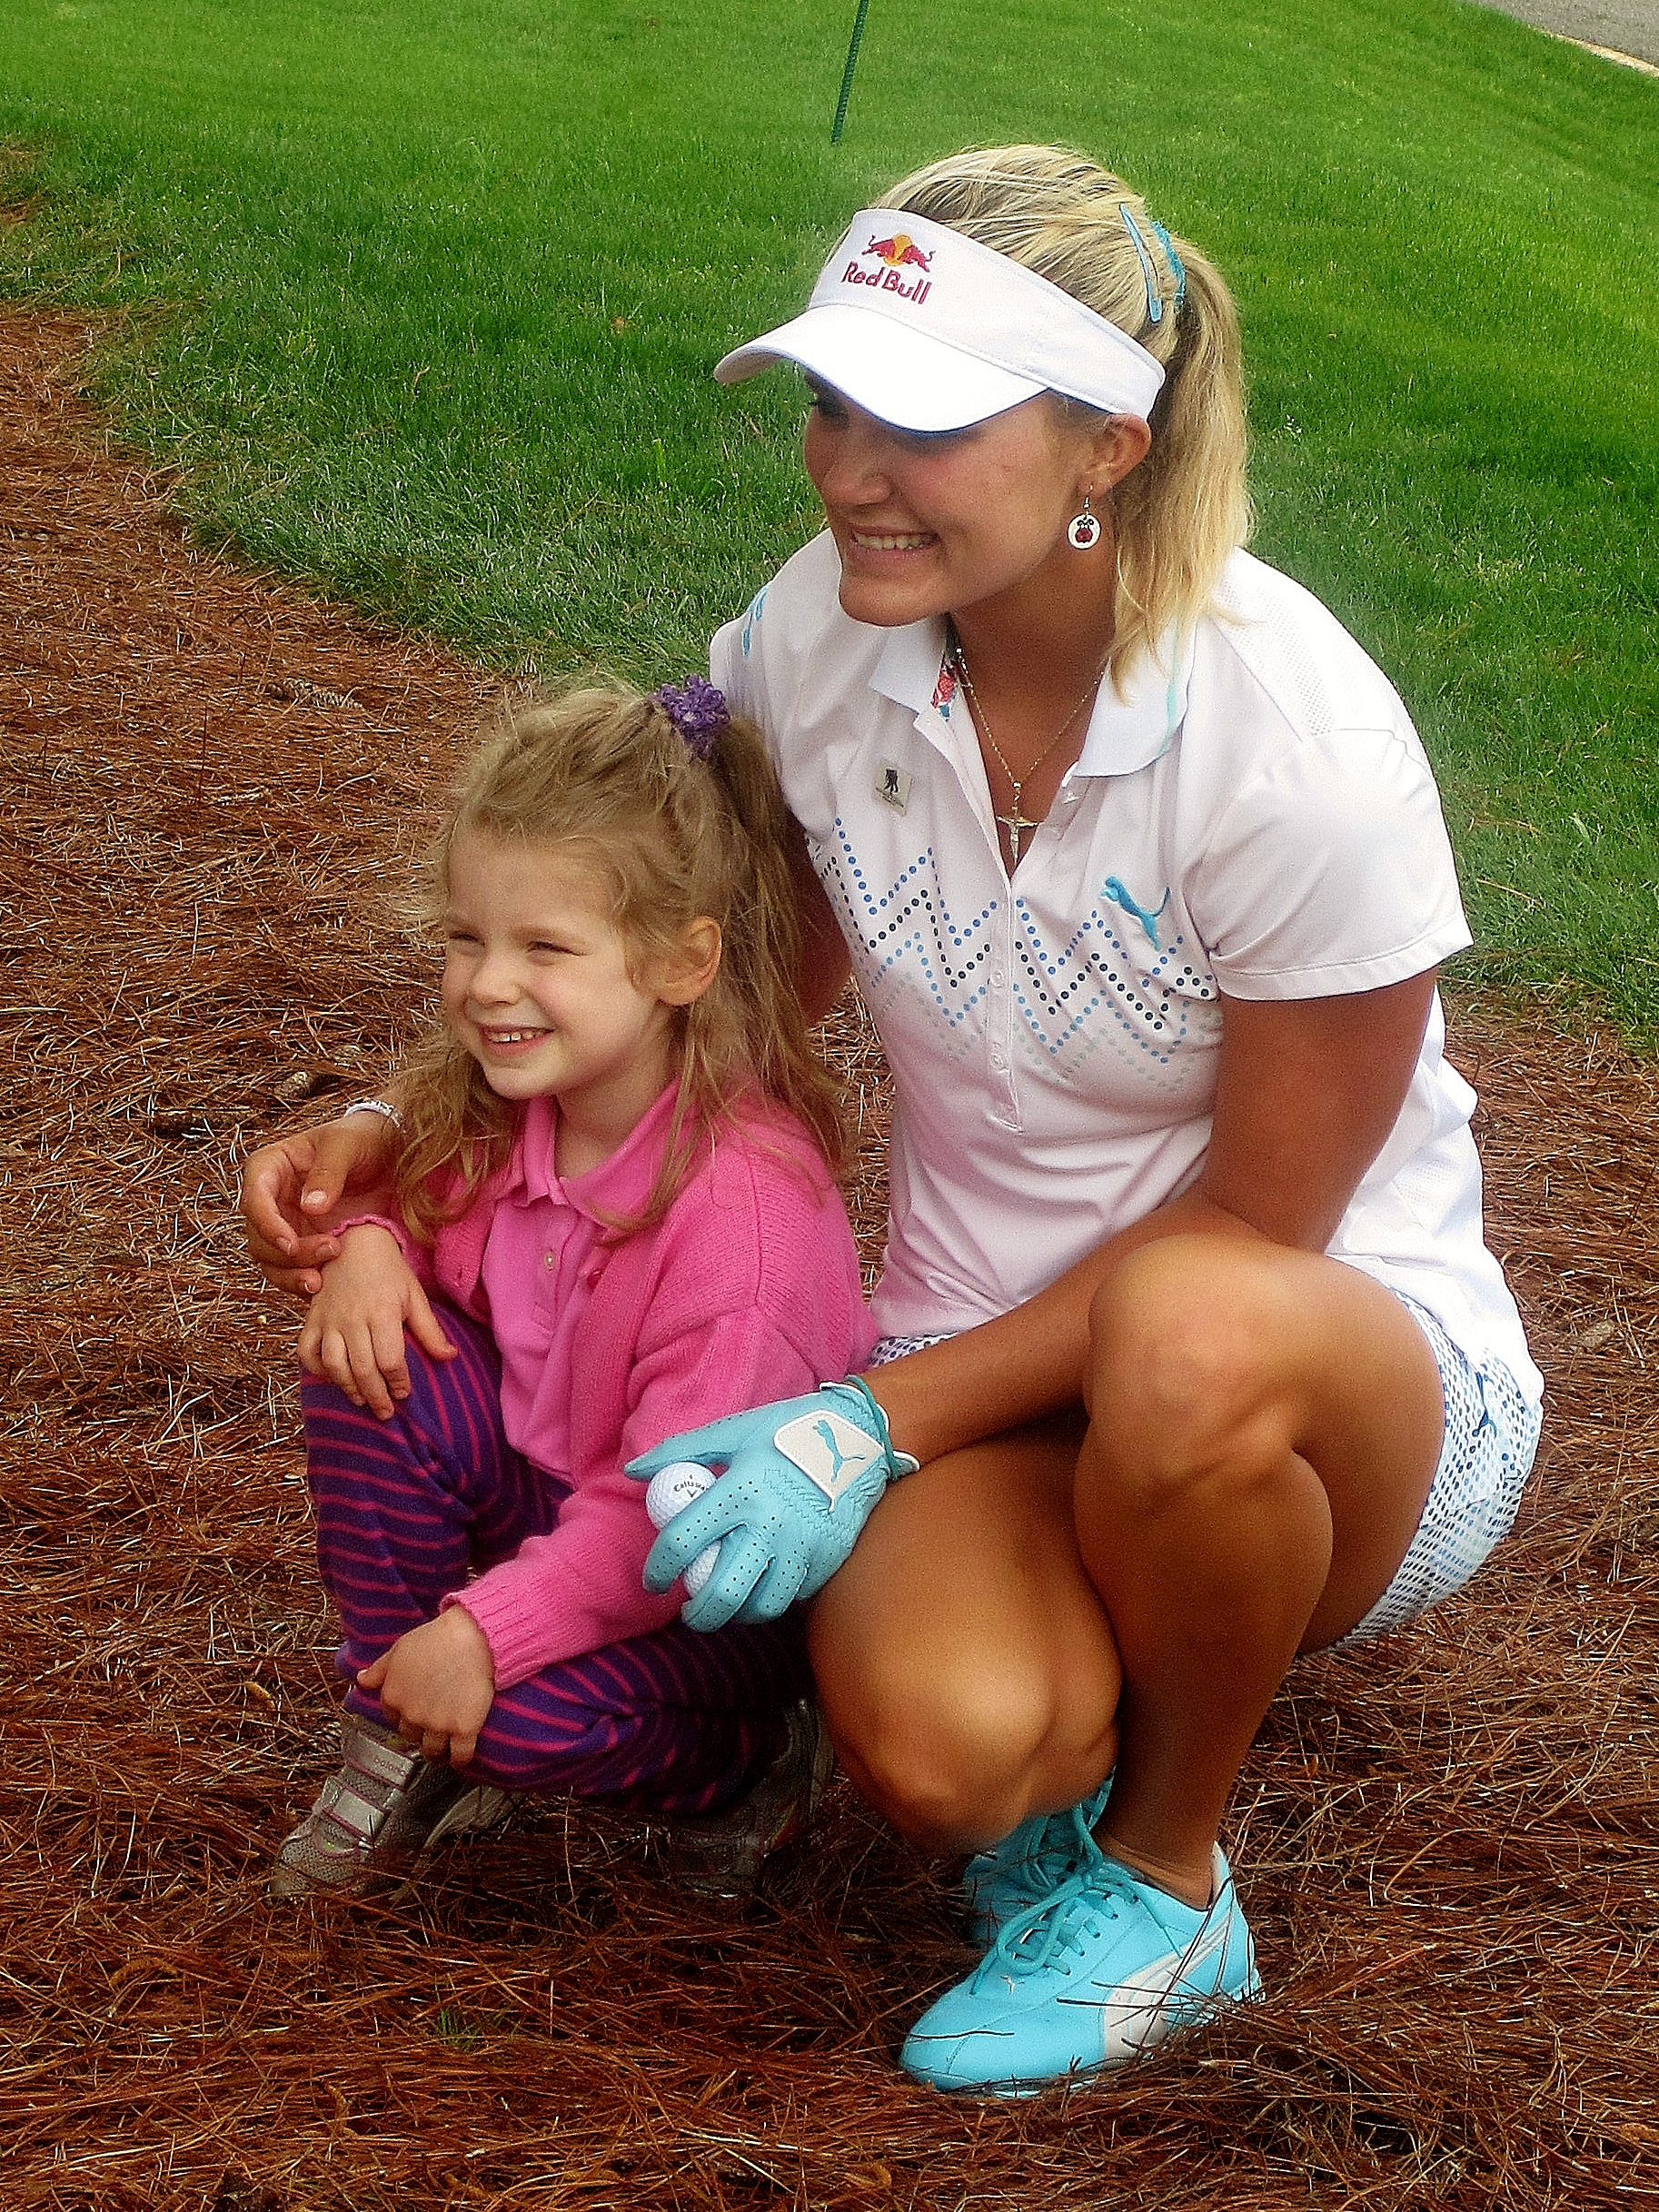 Lexi Thompson takes some time to visit with a young fan.